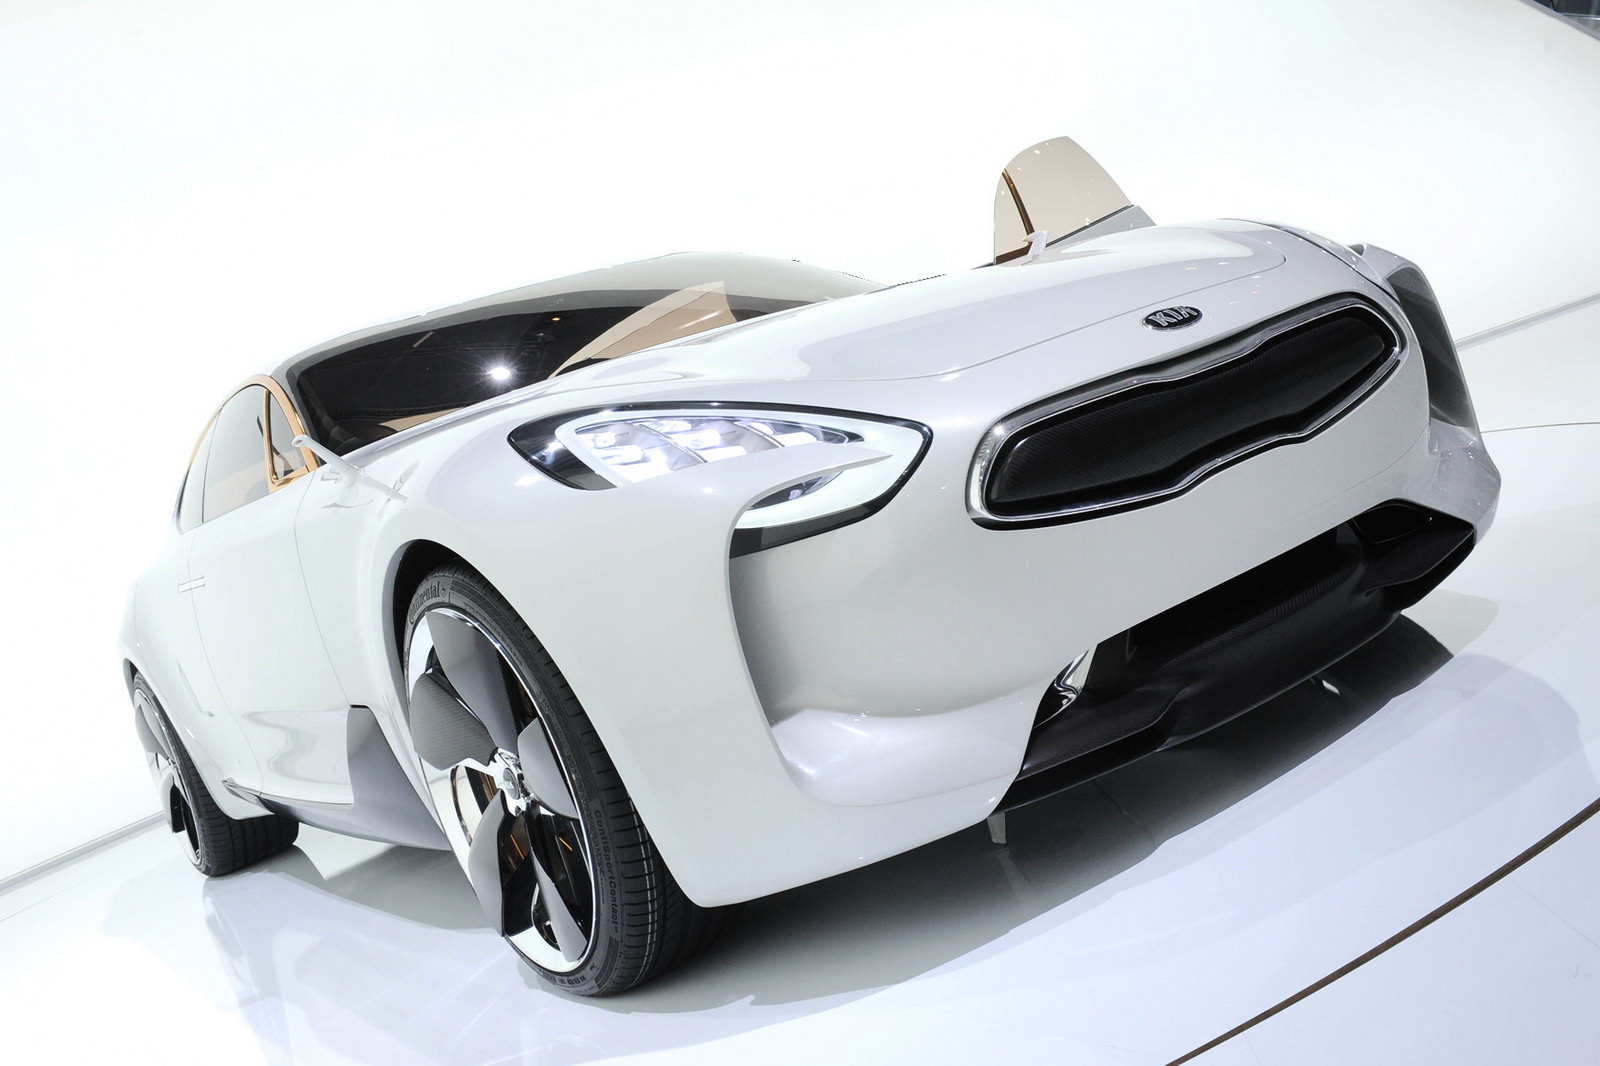 2011 KIA RWD GT Concept 2011 Concept of Kia Becomes Production?